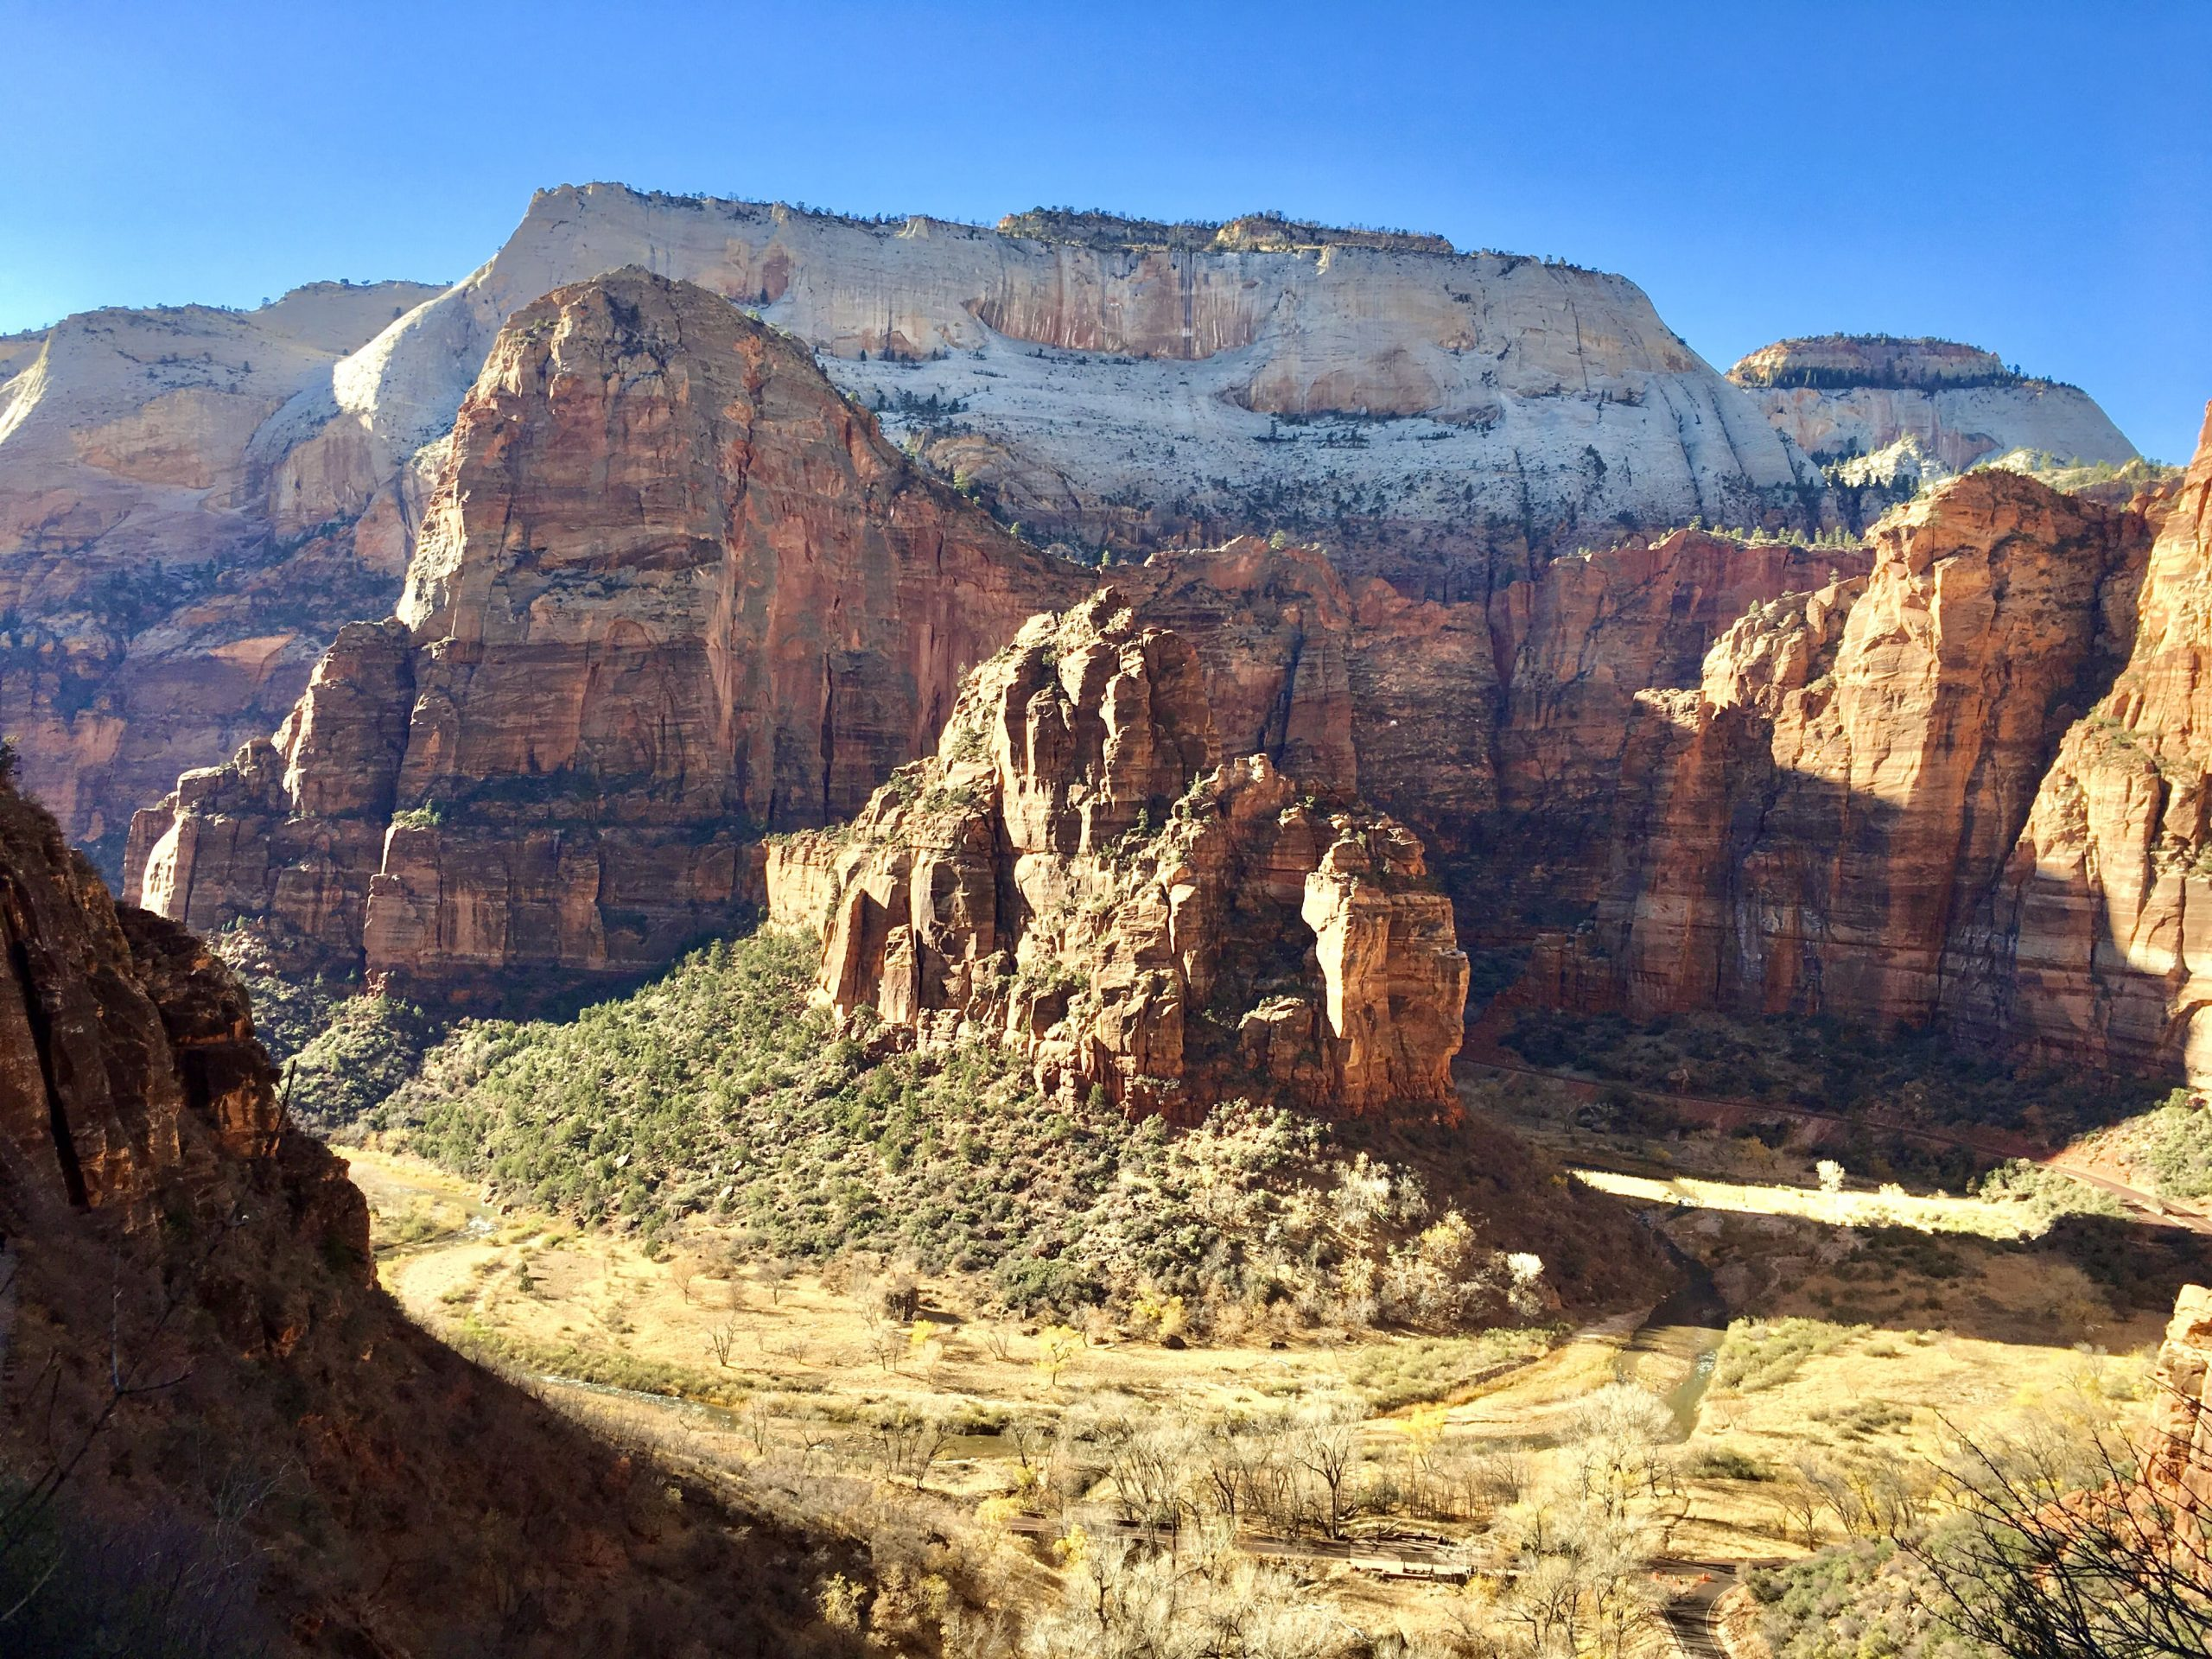 View from Hidden Canyon Trail at Zion National Park